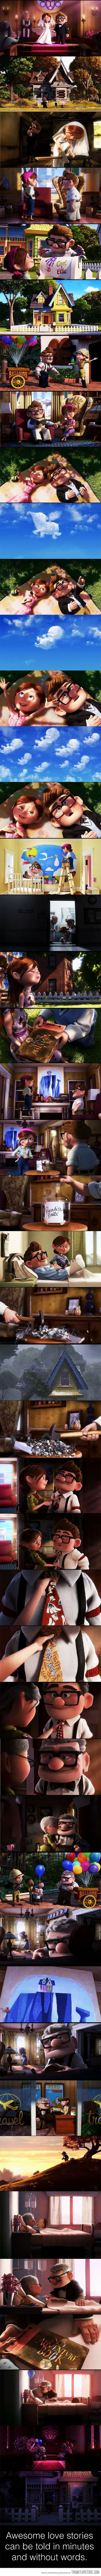 Up! A True love Story. This makes me tear up just looking